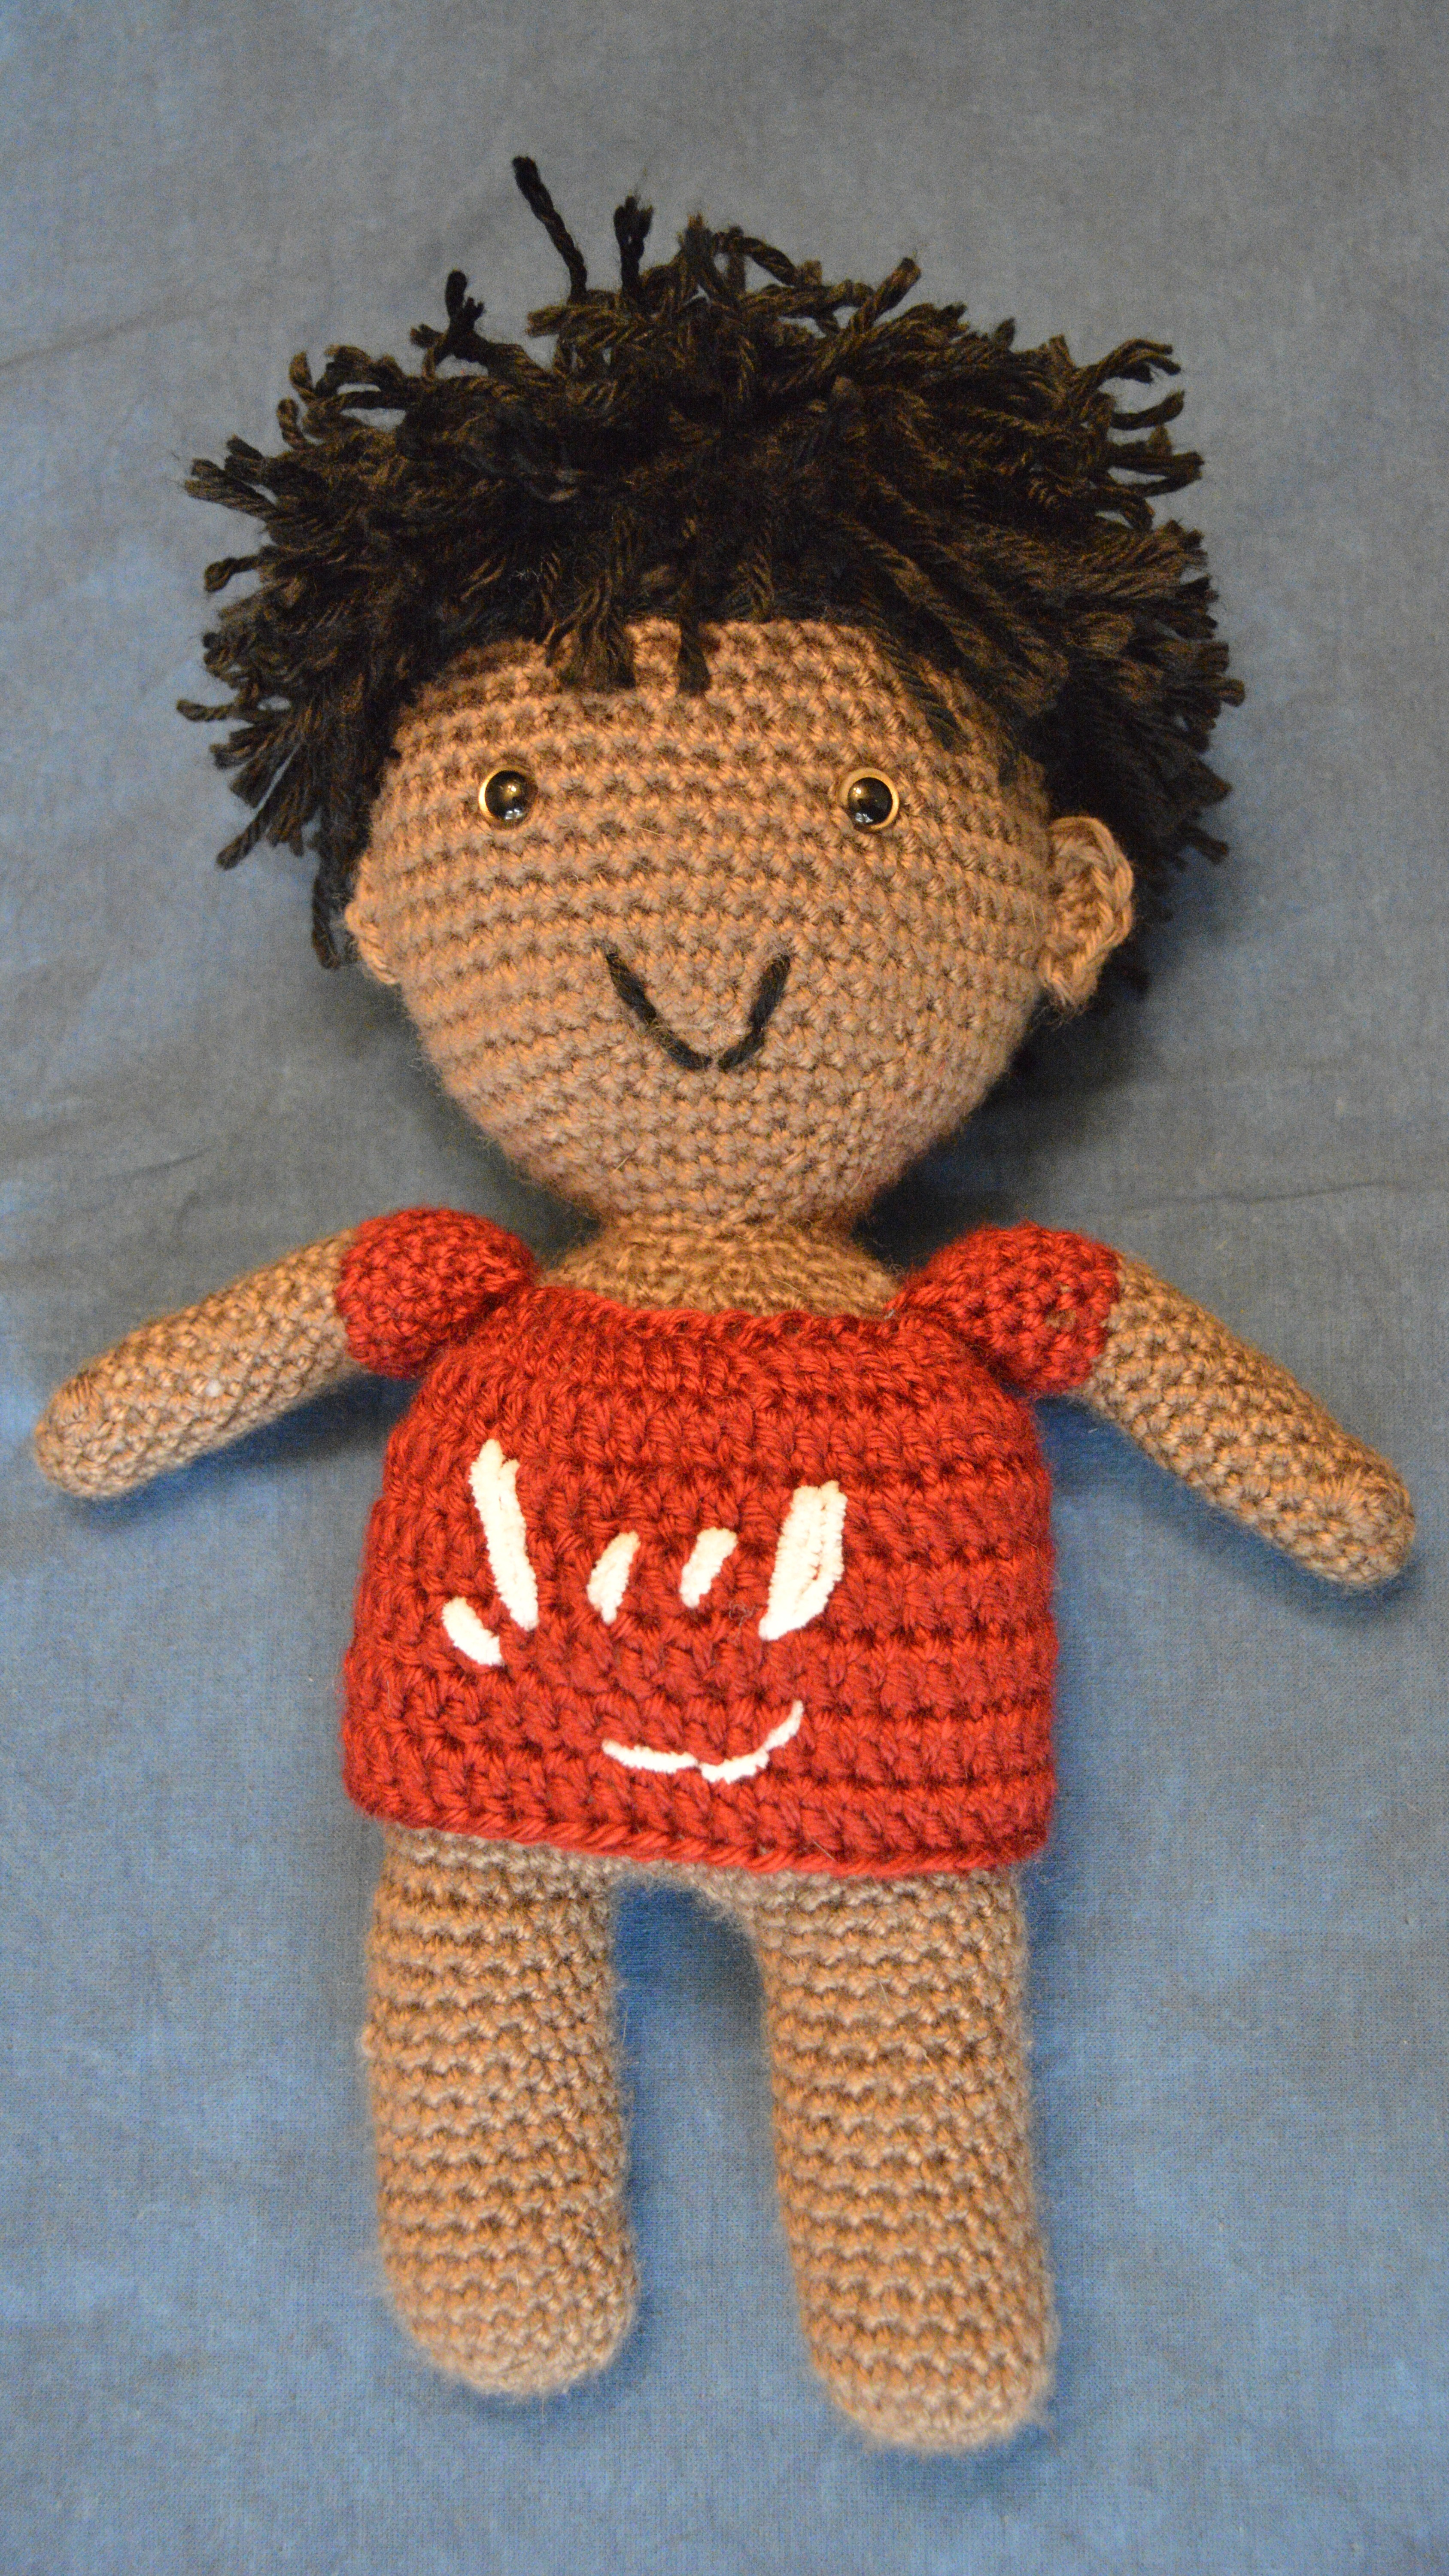 medium-skinned deaf boy doll with one microtia ear, shaggy black hair and red shirt with ILY; plush deaf dolls with hearing aids and cochlear implants